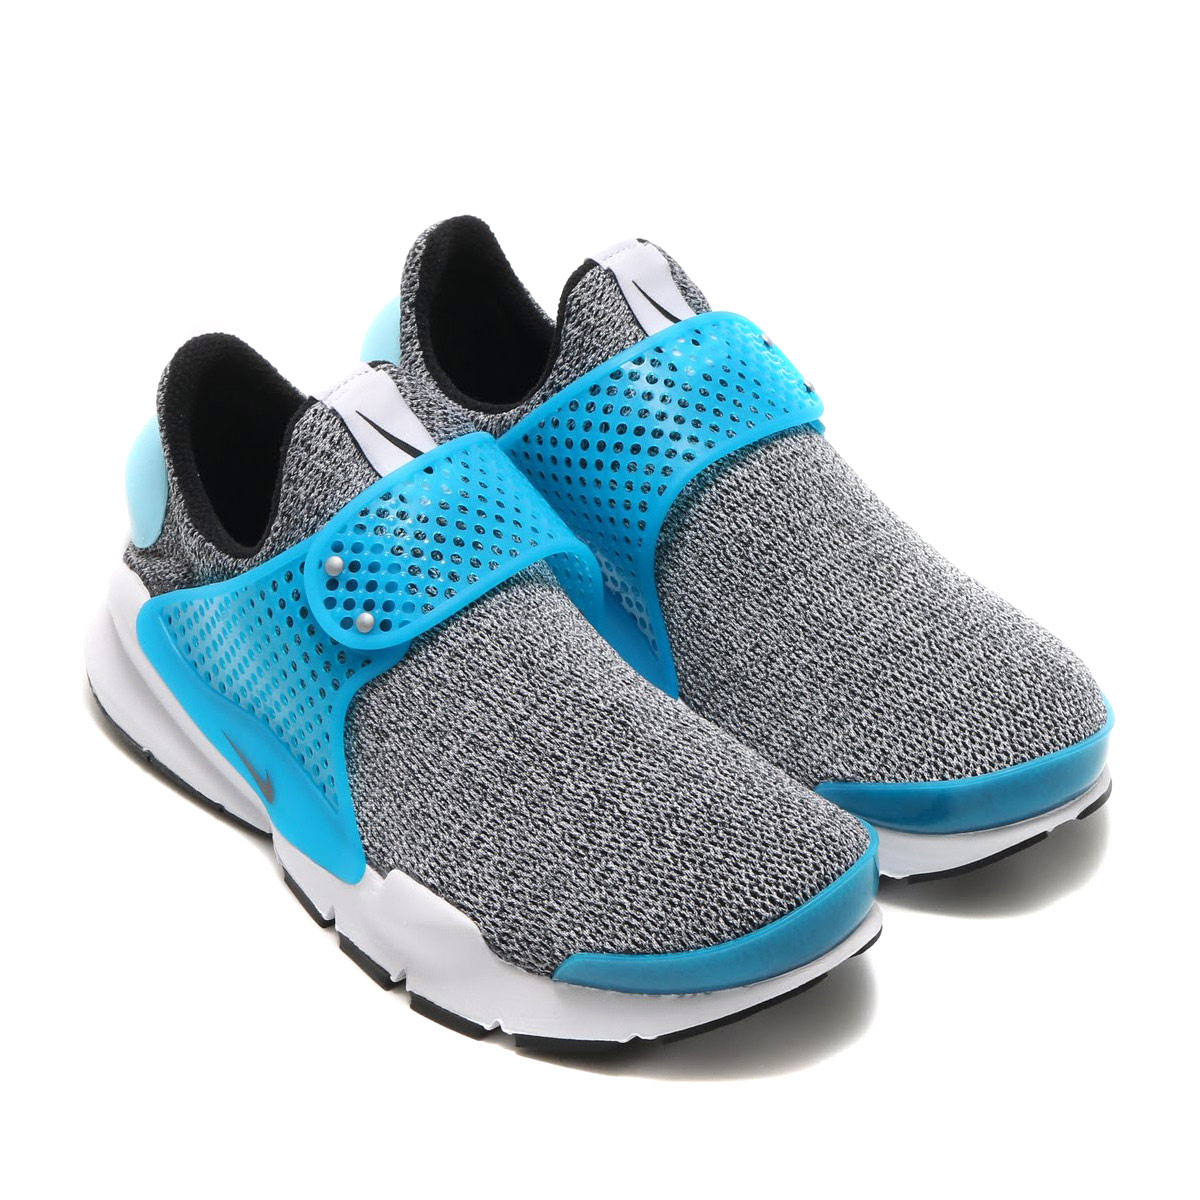 NIKE WMNS SOCK DART SE(ナイキ ウィメンズ ソック ダート SE)BLACK/BLACK-BLUE LAGOON-WHITE-STILL BLUE-METRO GREY【メンズ レディース スニーカー】17SP-S